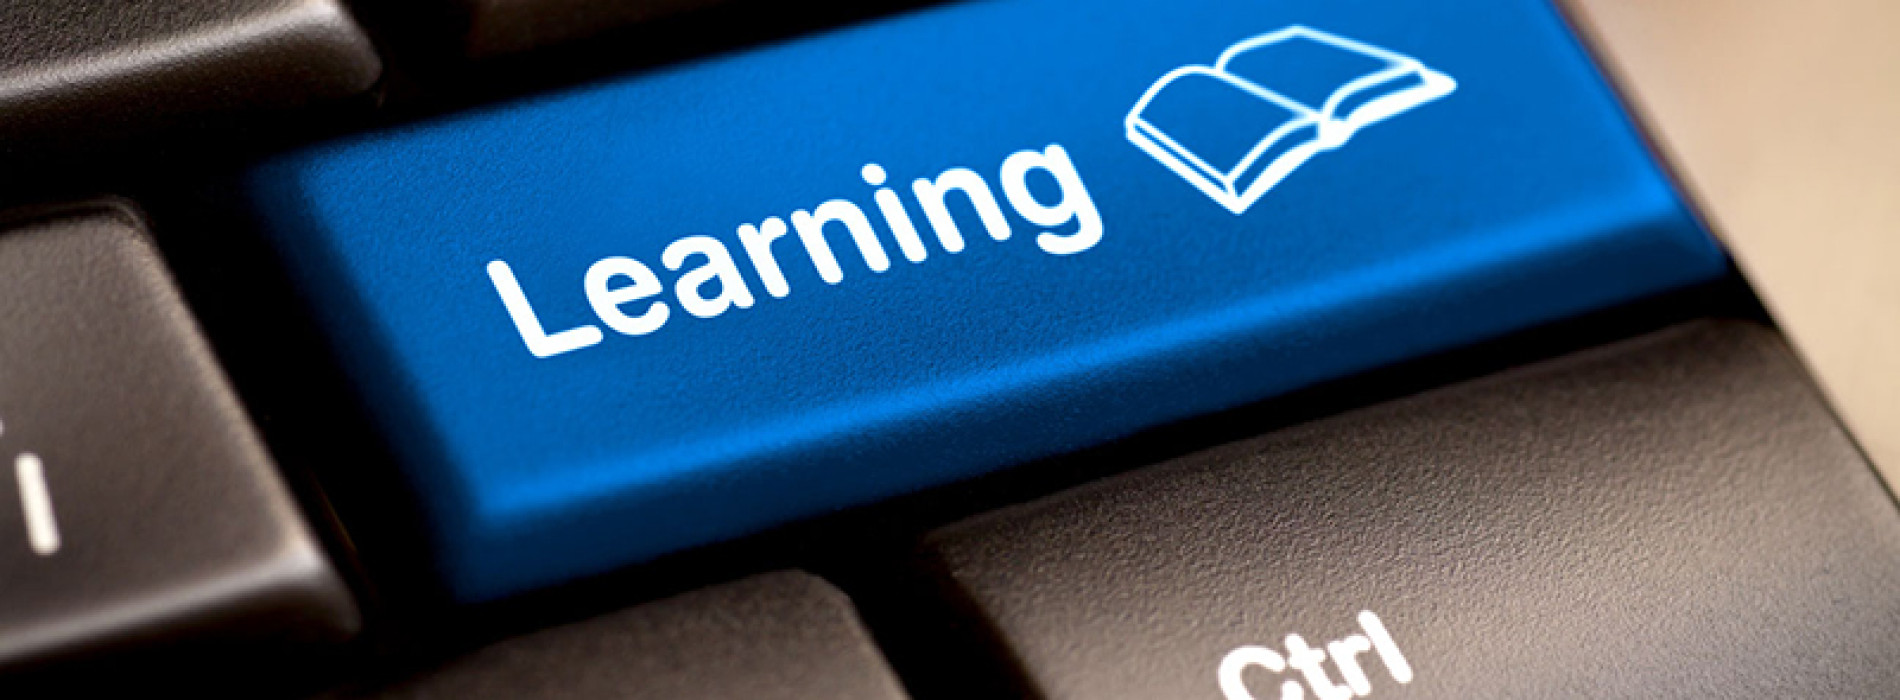 Top 5 Benefits of Online Learning for Adult Learners